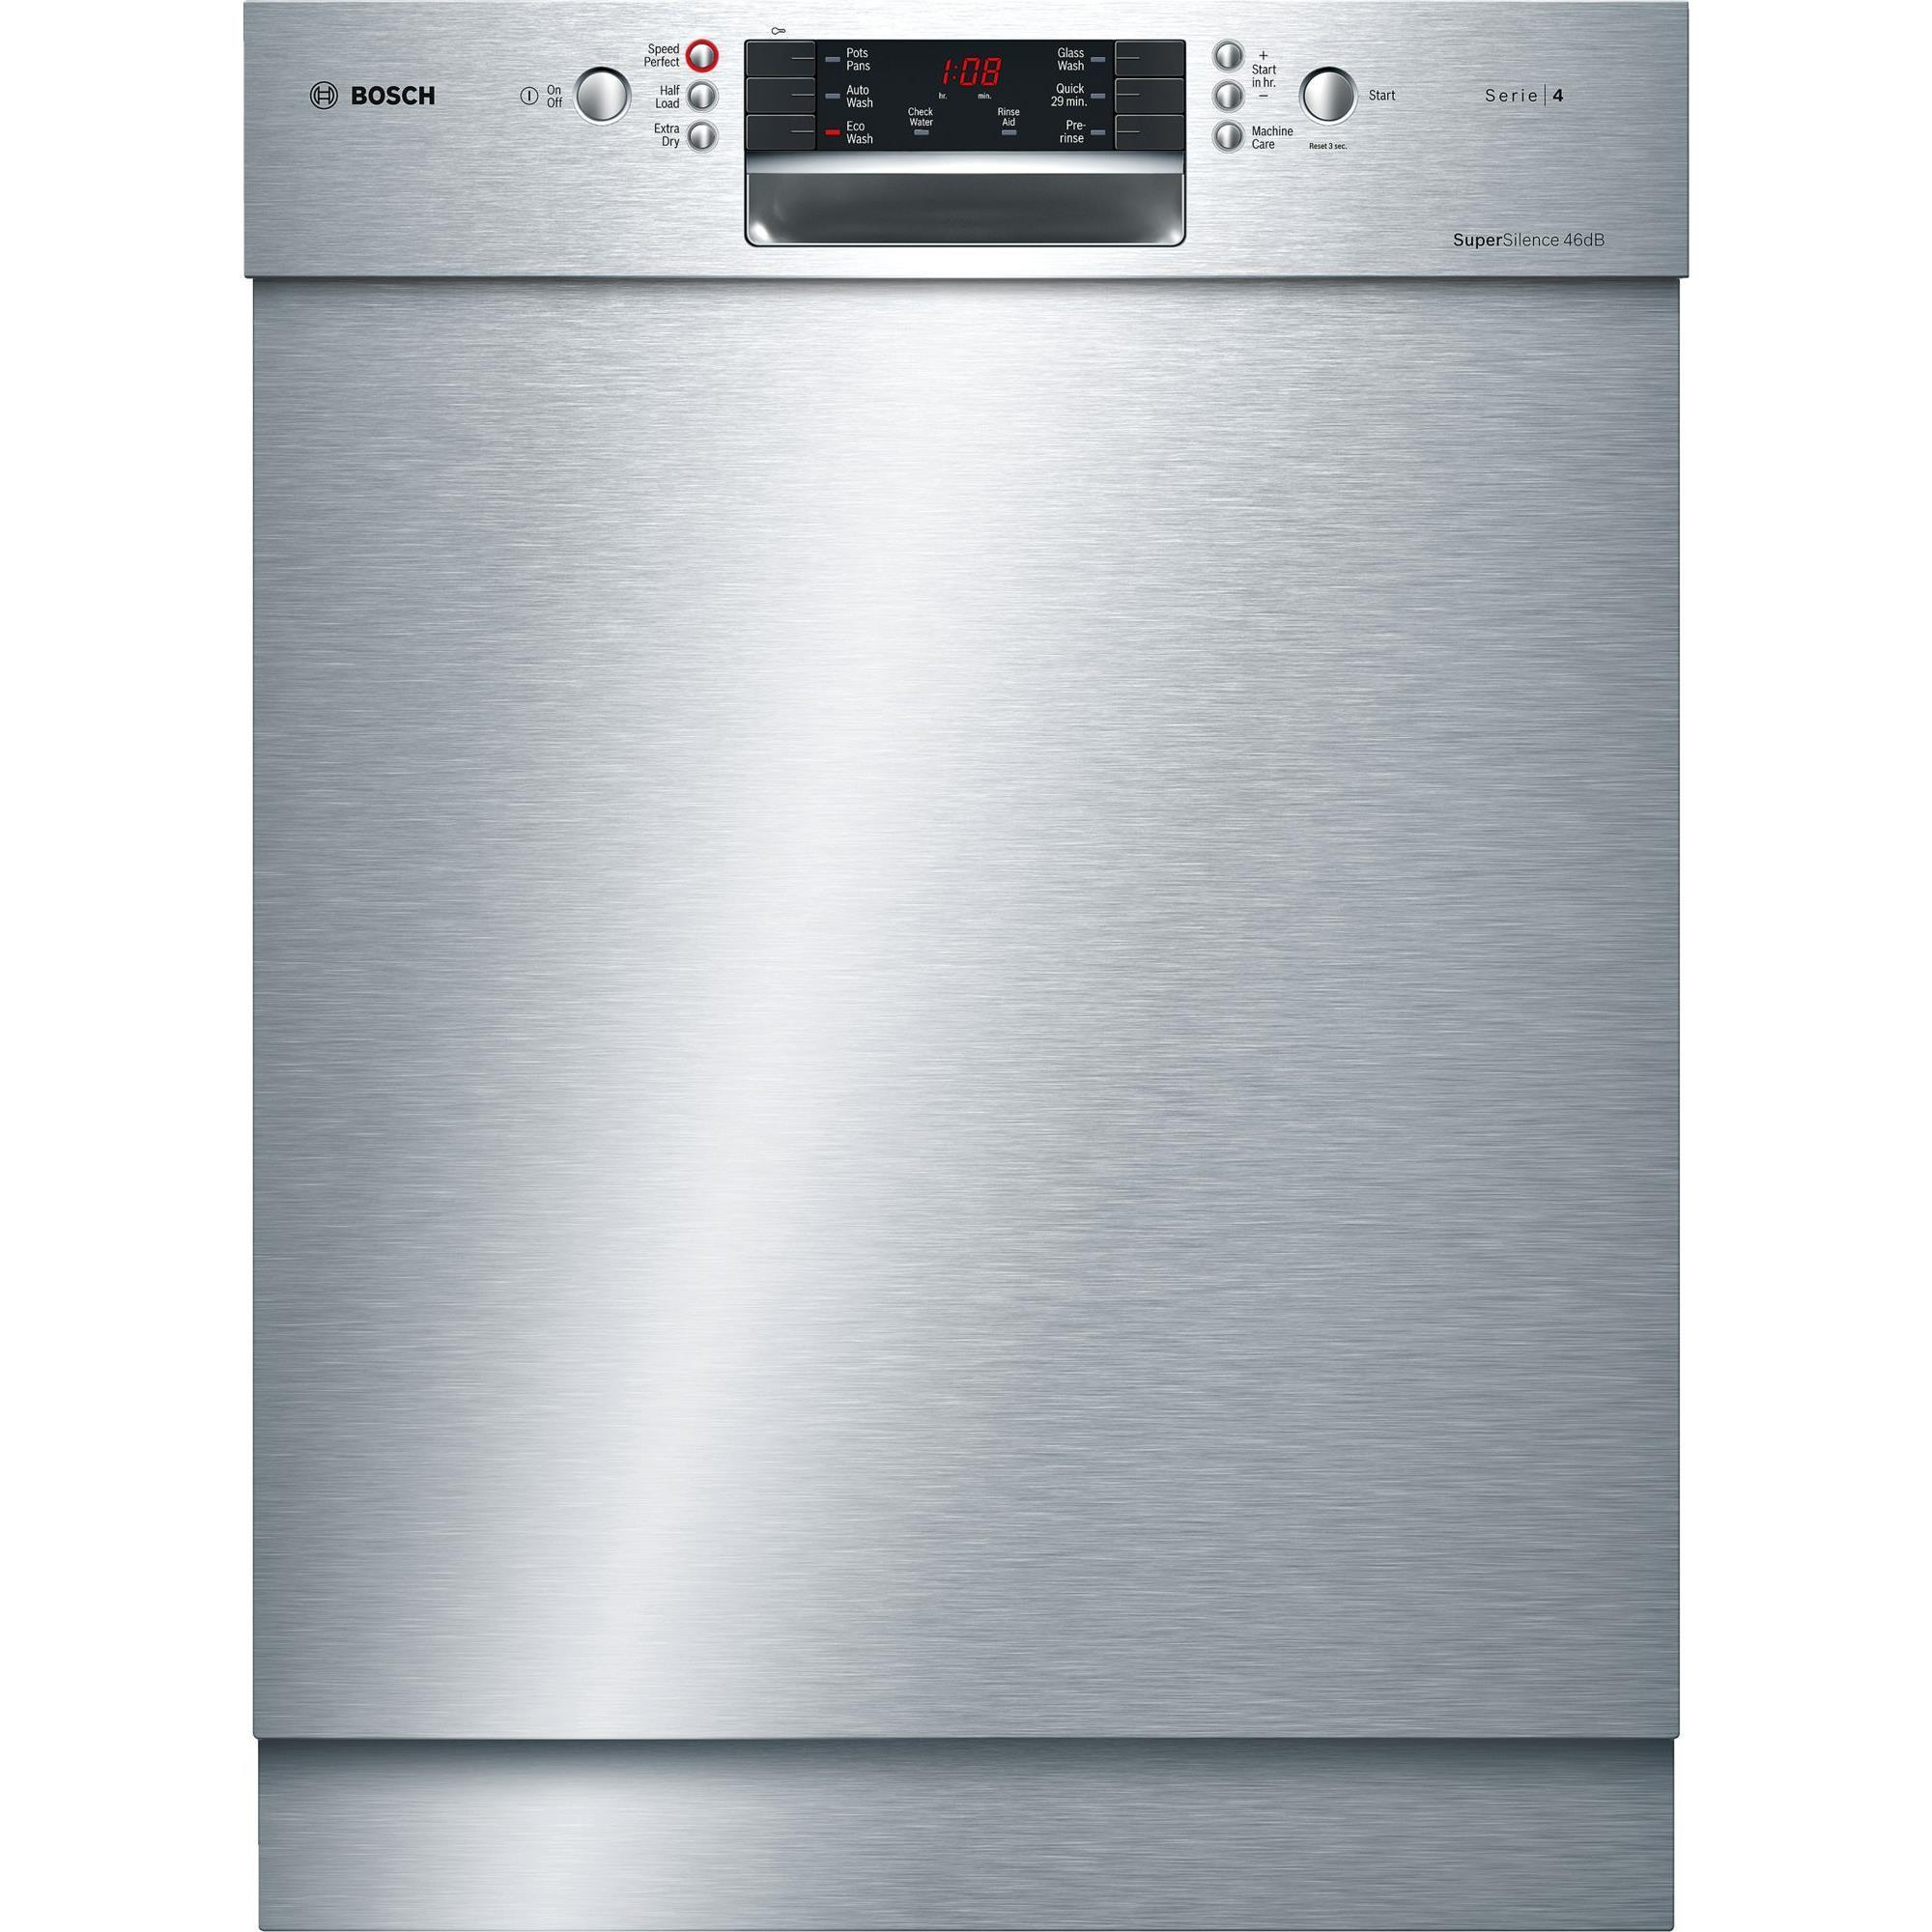 Bosch SMU46KS01A Built-in Dishwasher (Stainless Steel)